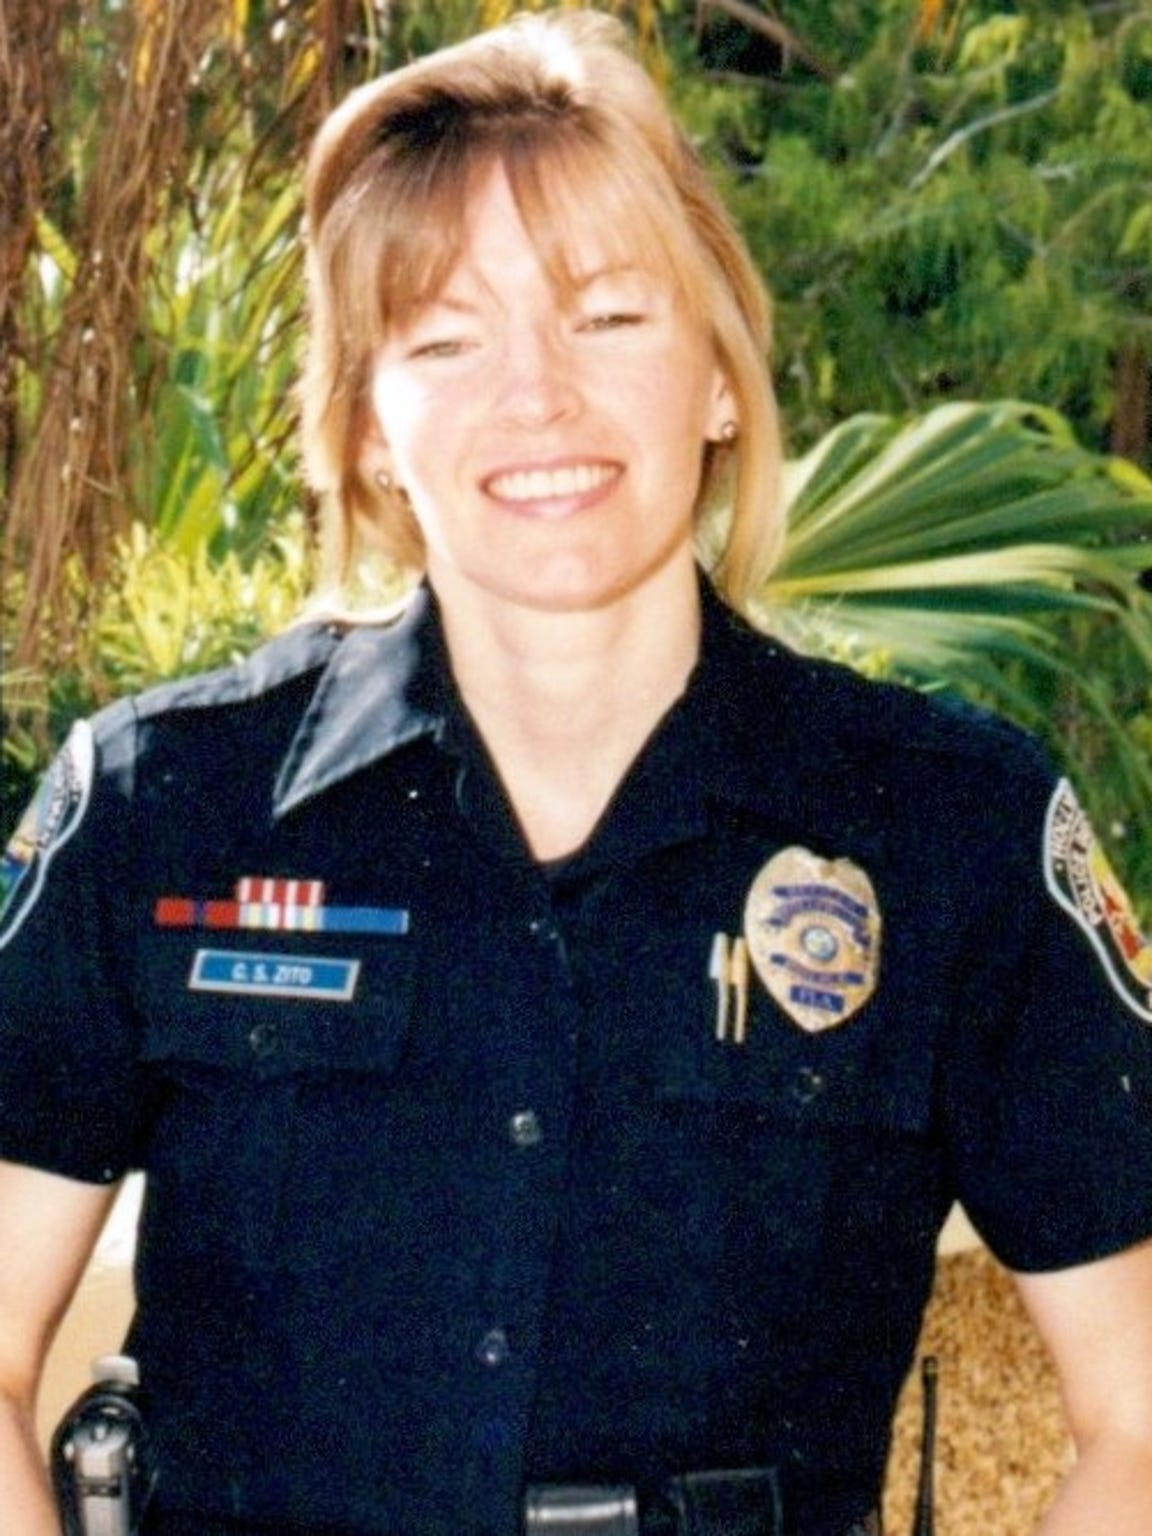 Carol Stiers Zito, a former police officer, ended her